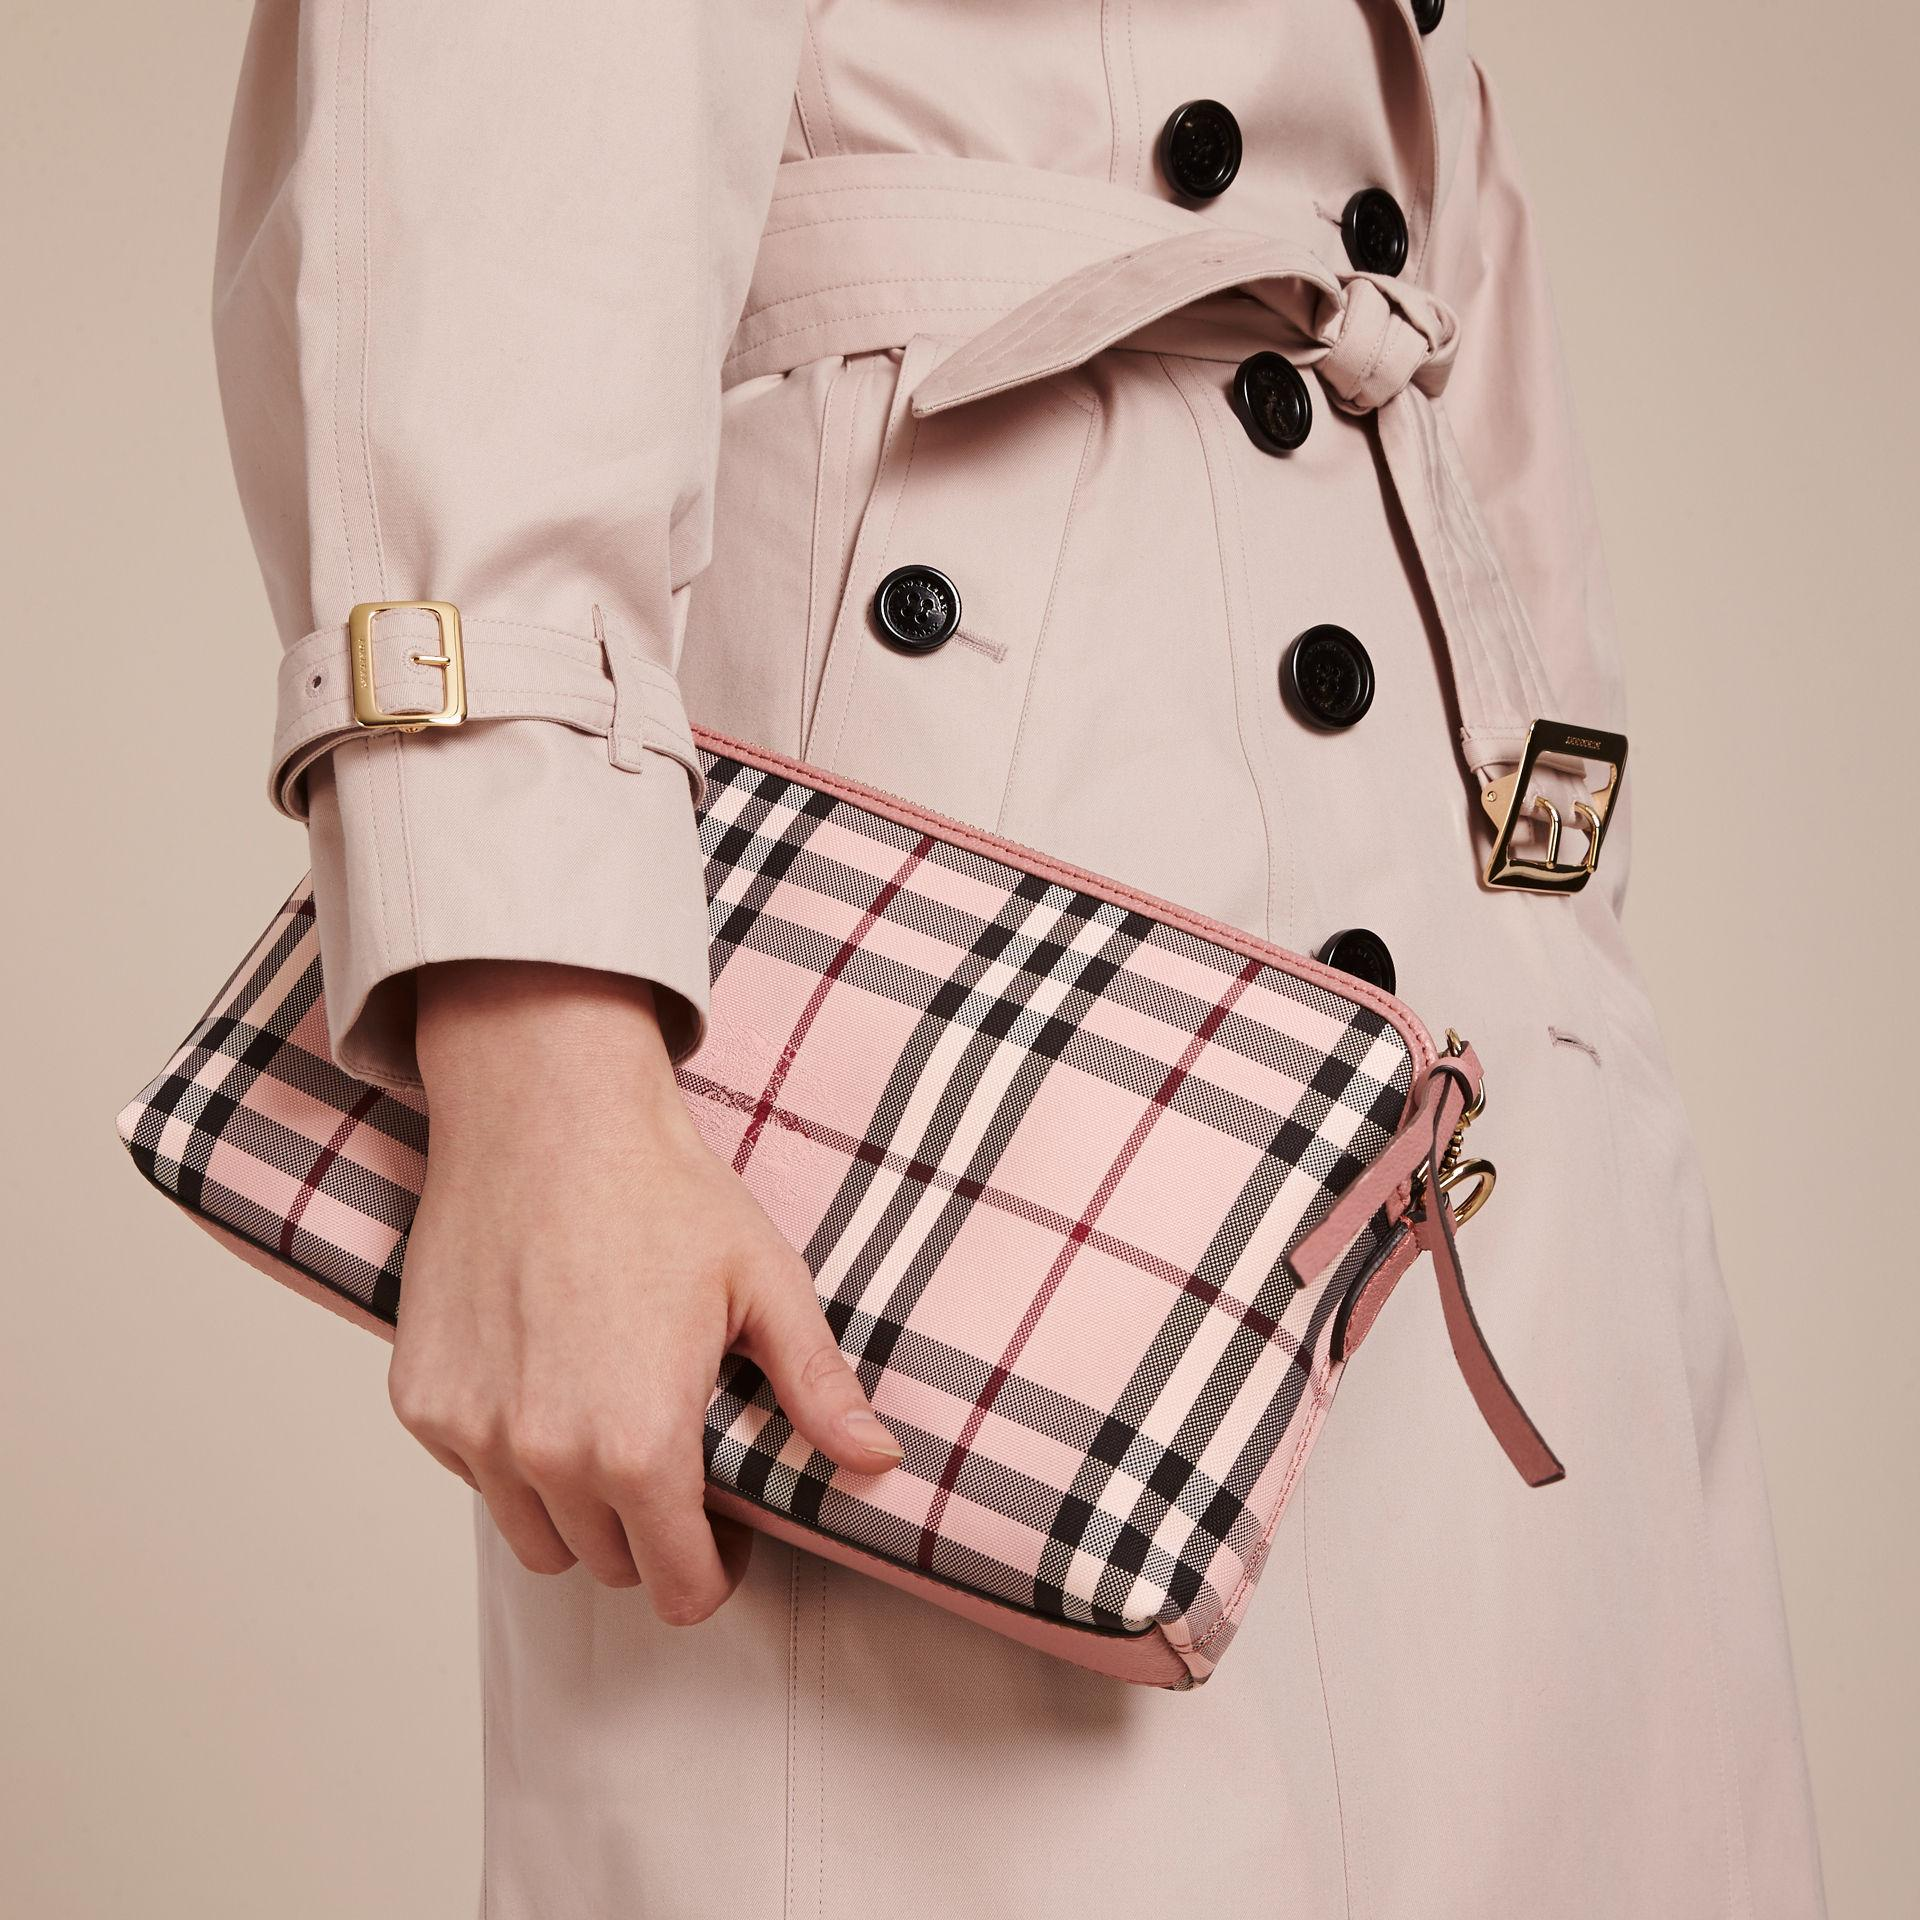 49b67fa3b87d Lyst - Burberry Overdyed Horseferry Check And Leather Clutch Bag in Pink